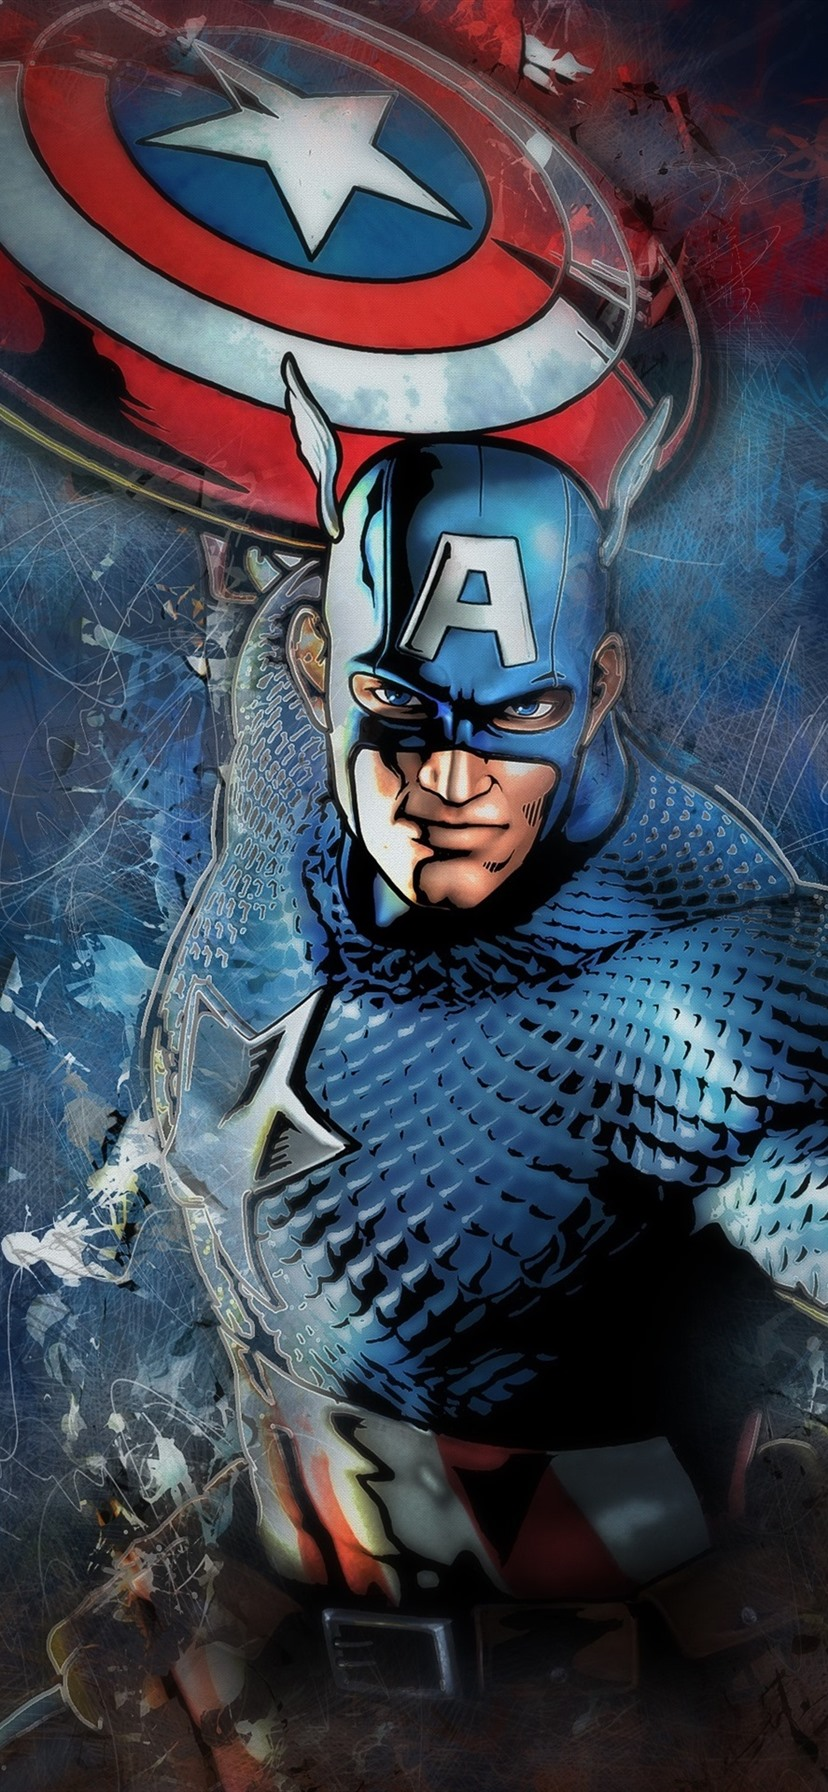 Wallpaper Captain America Shield Mask Marvel Comics Art Picture 3840x2160 Uhd 4k Picture Image